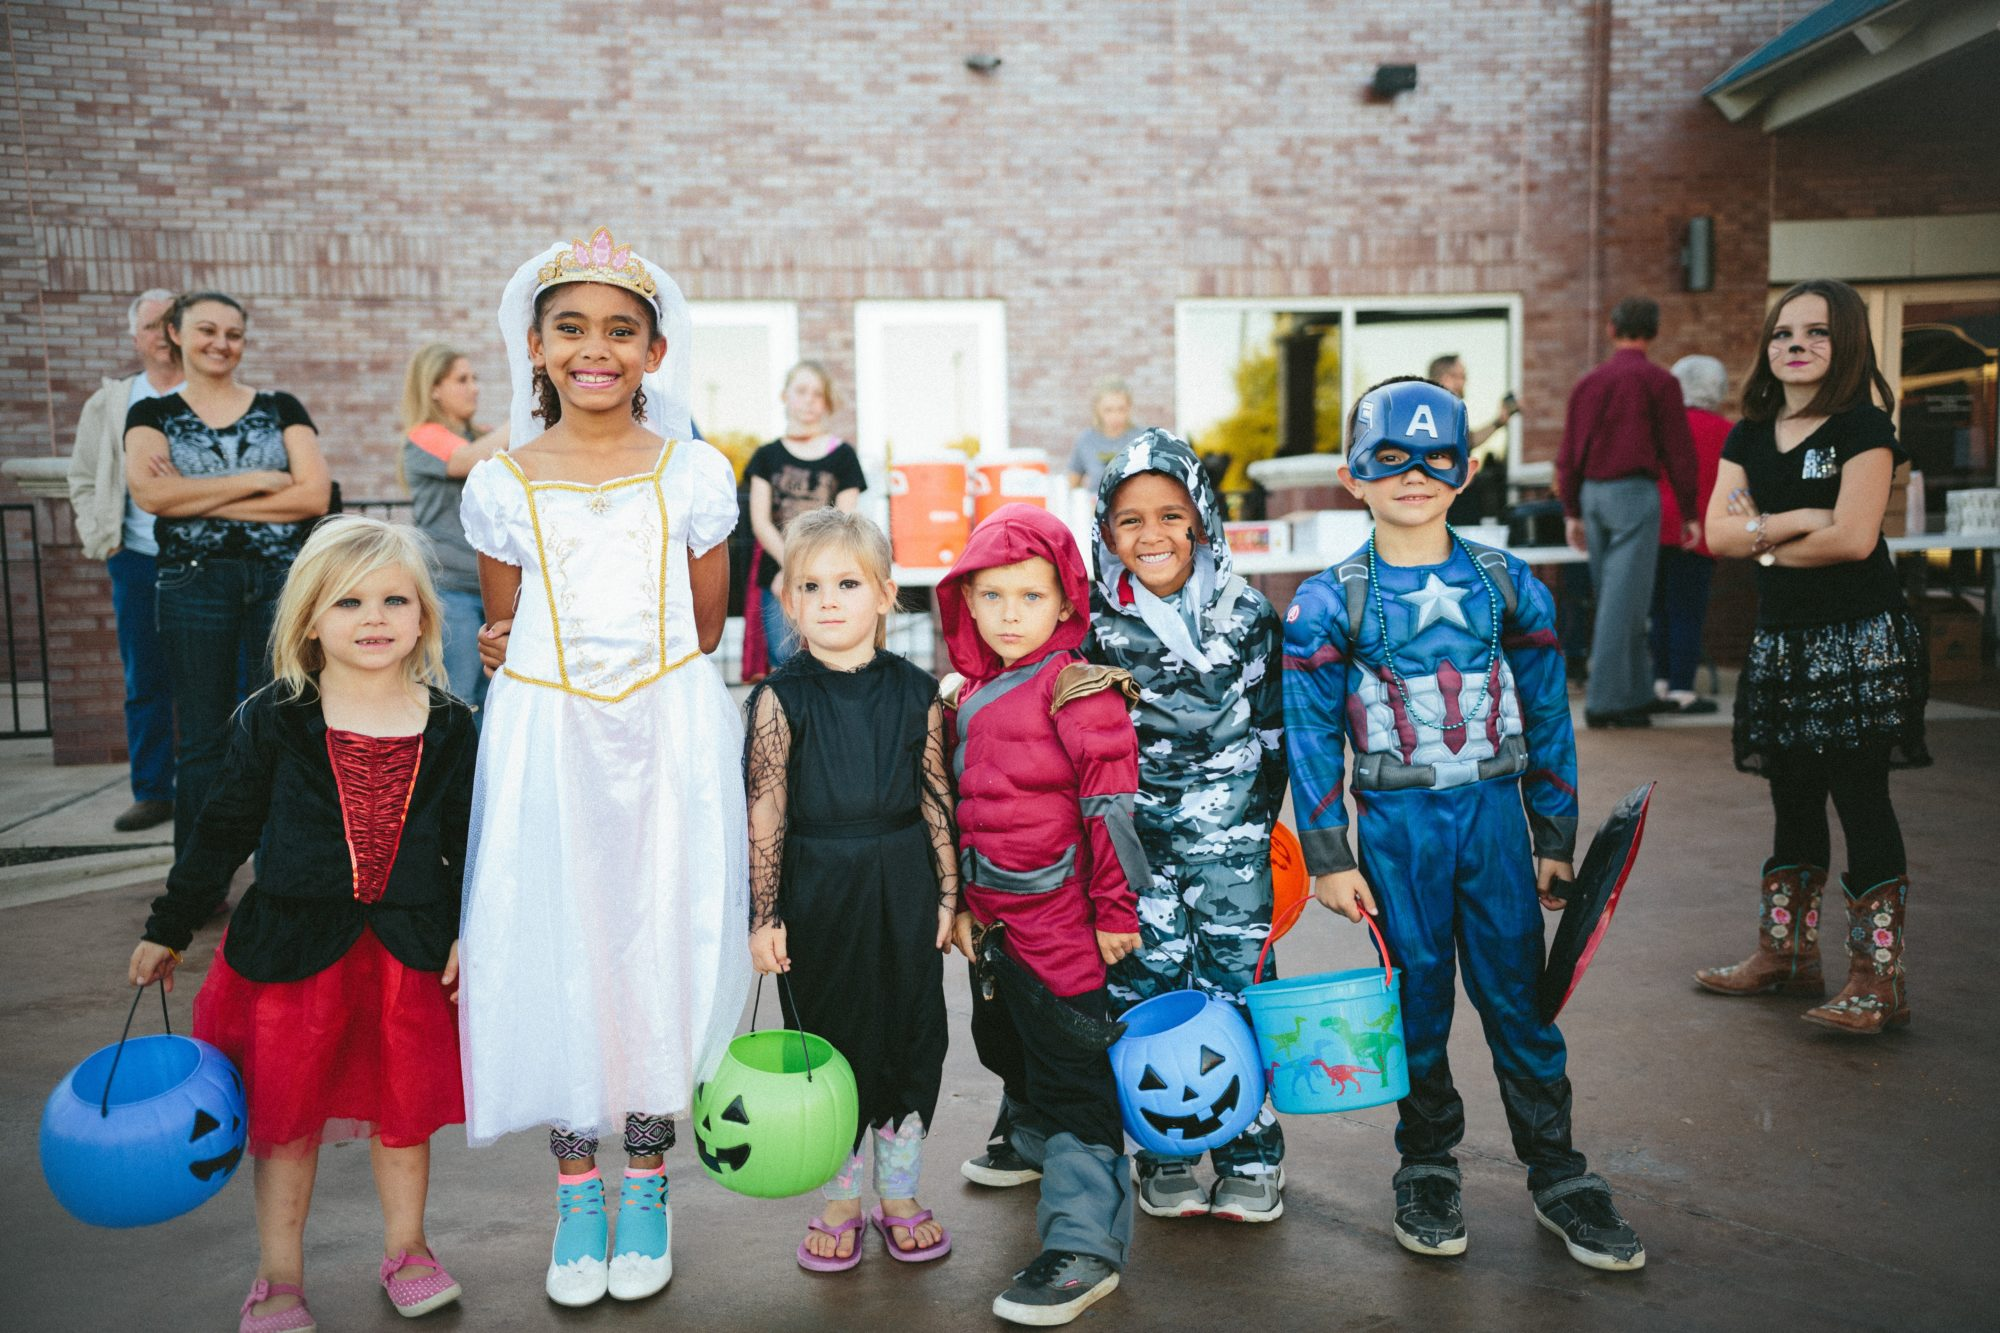 a group of children in Halloween costumes